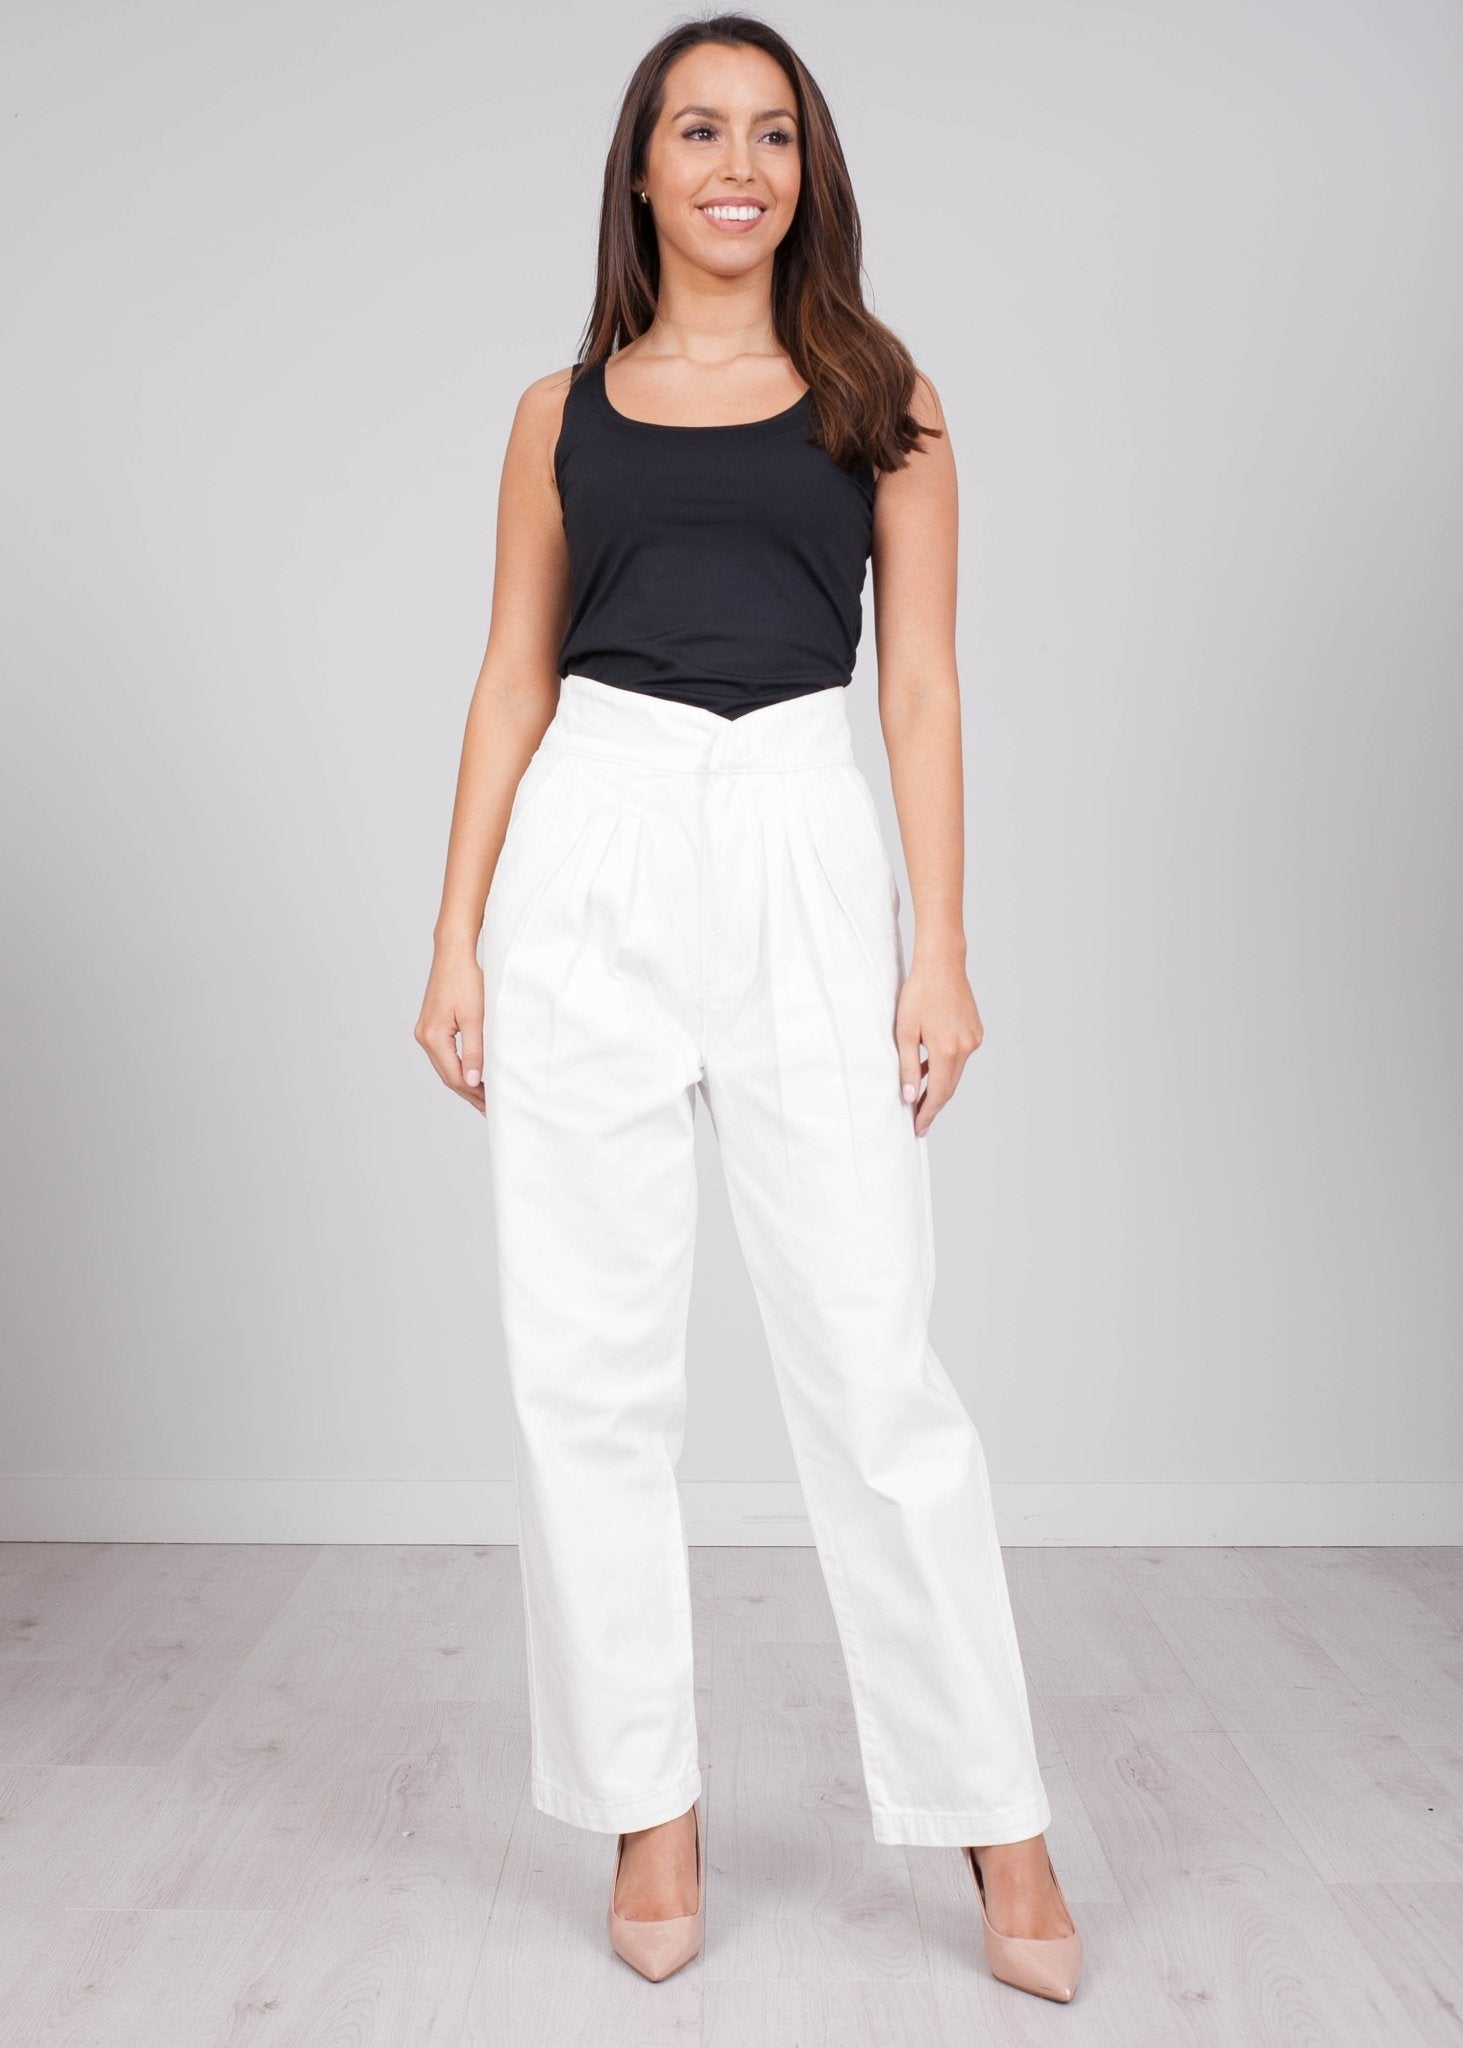 Maisy White Jeans - The Walk in Wardrobe